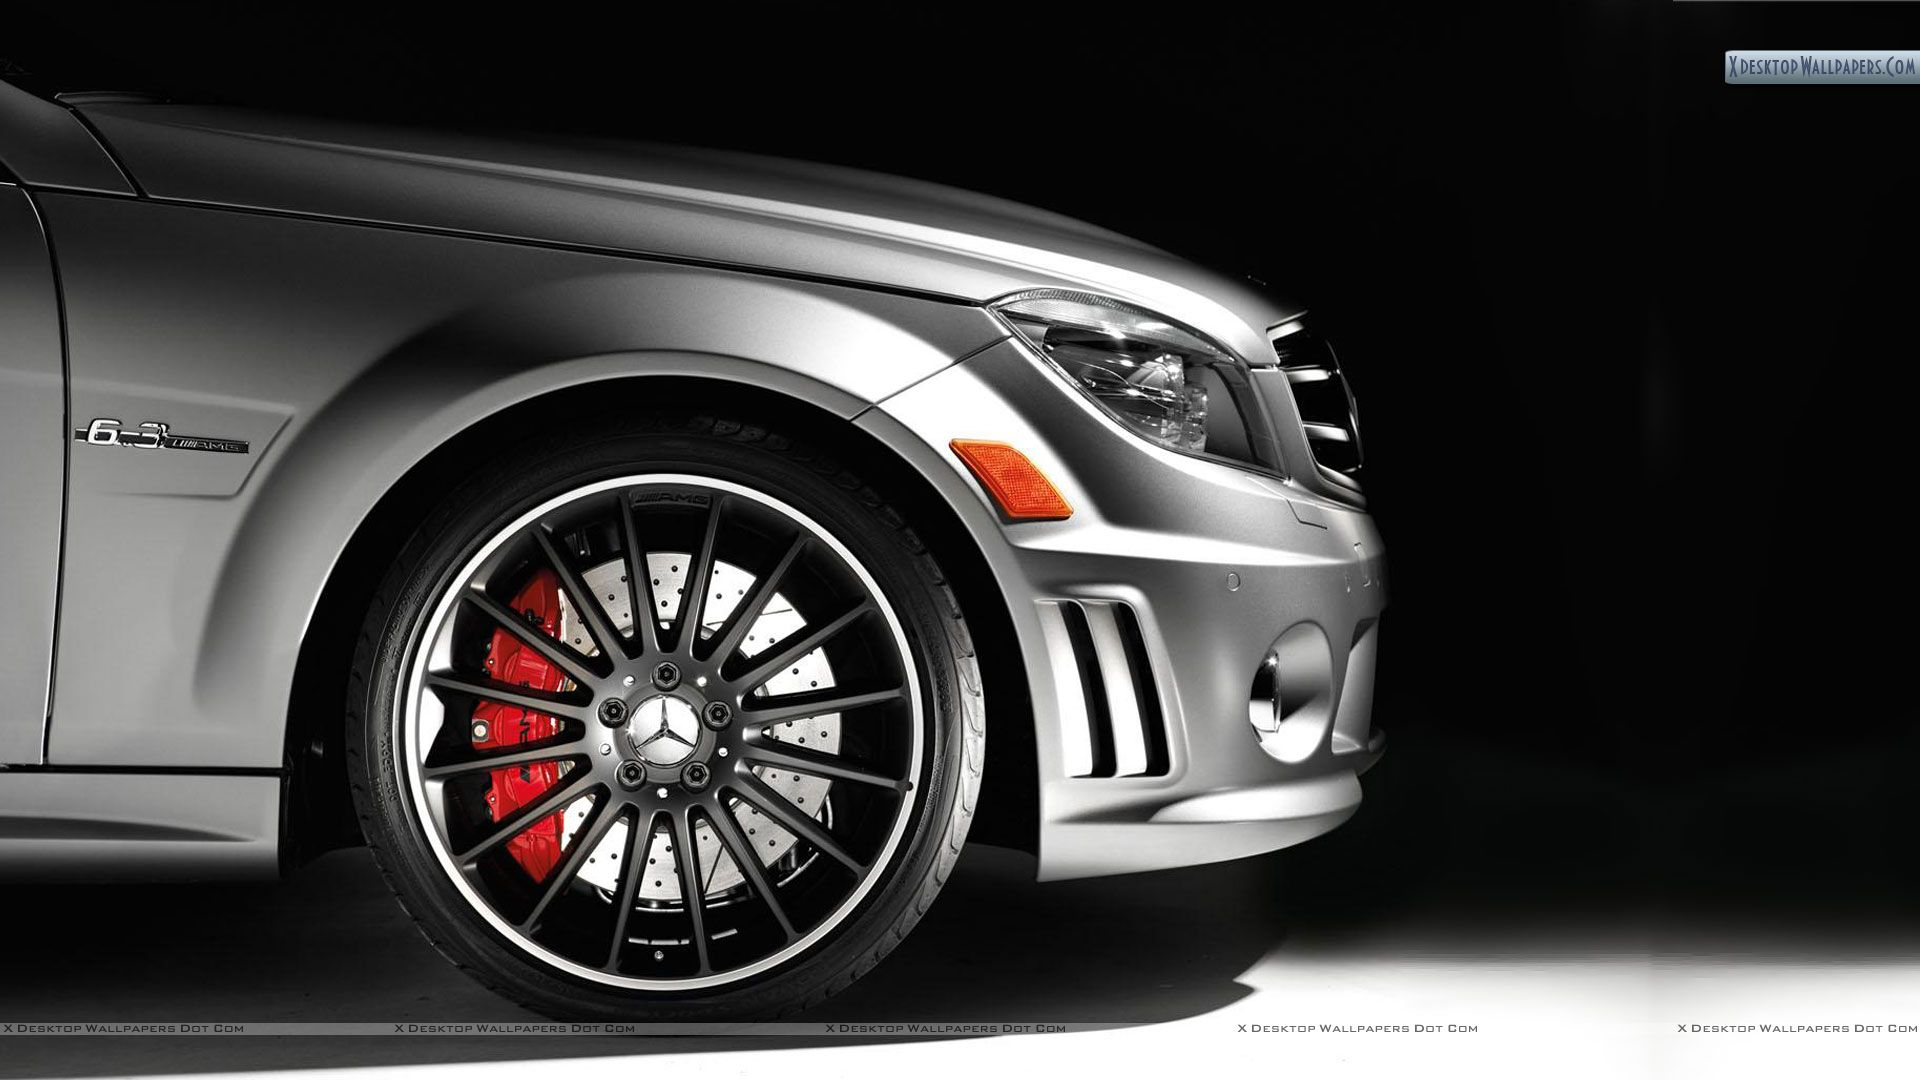 Mercedes benz c63 wallpapers photos images in hd for Mercedes benz tire